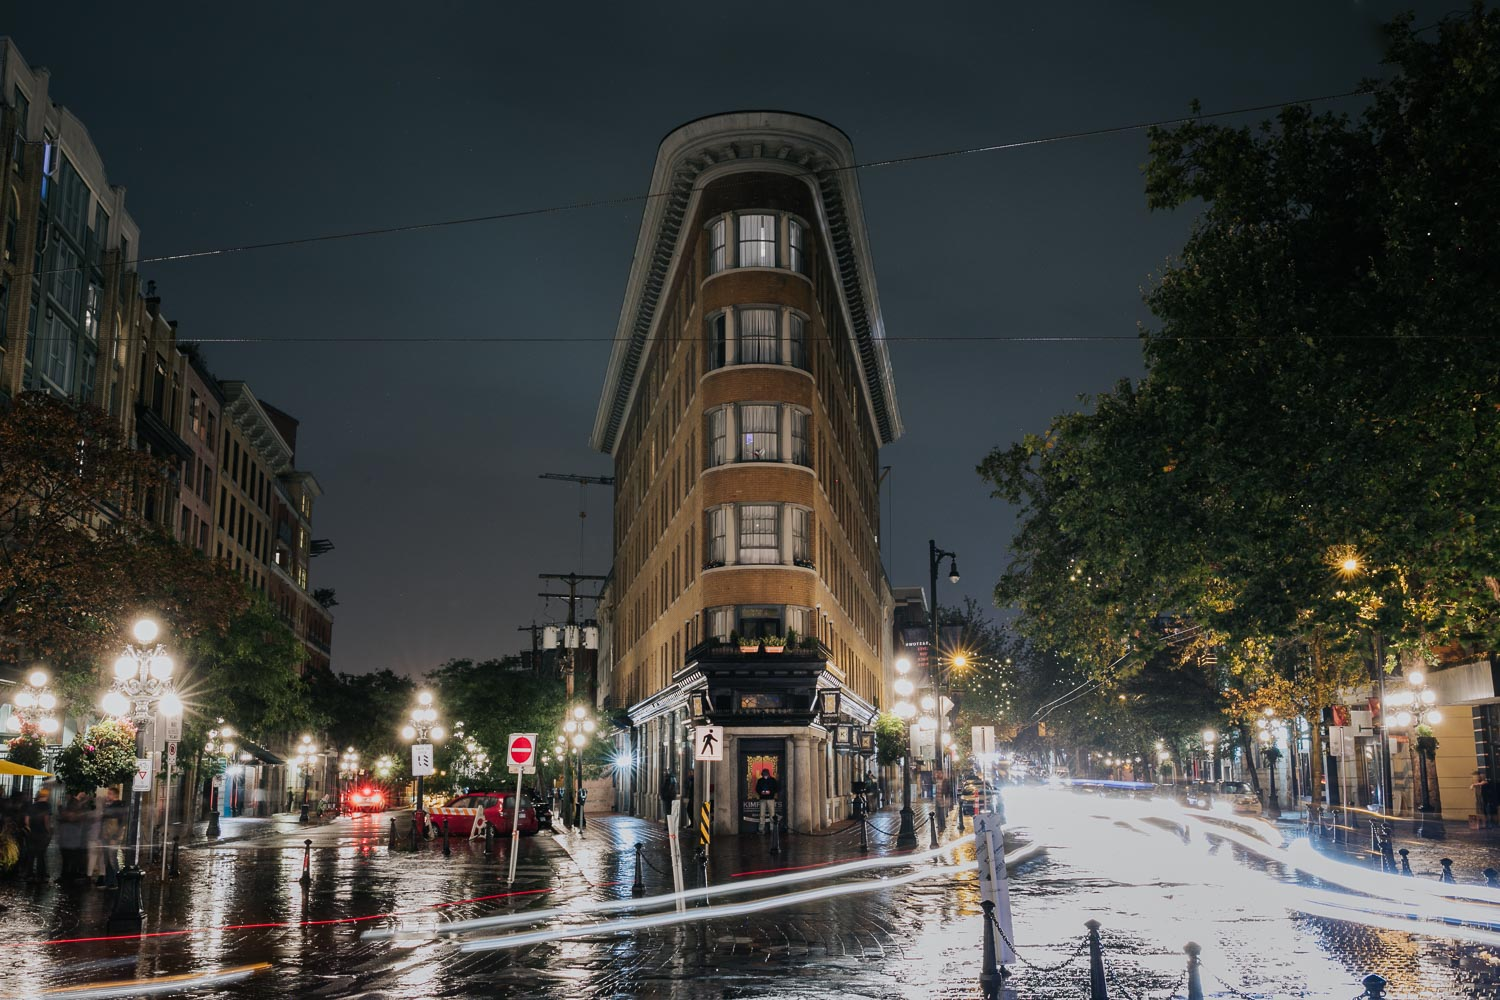 Hotel Europe, the Flatiron building of Vancouver Gastown